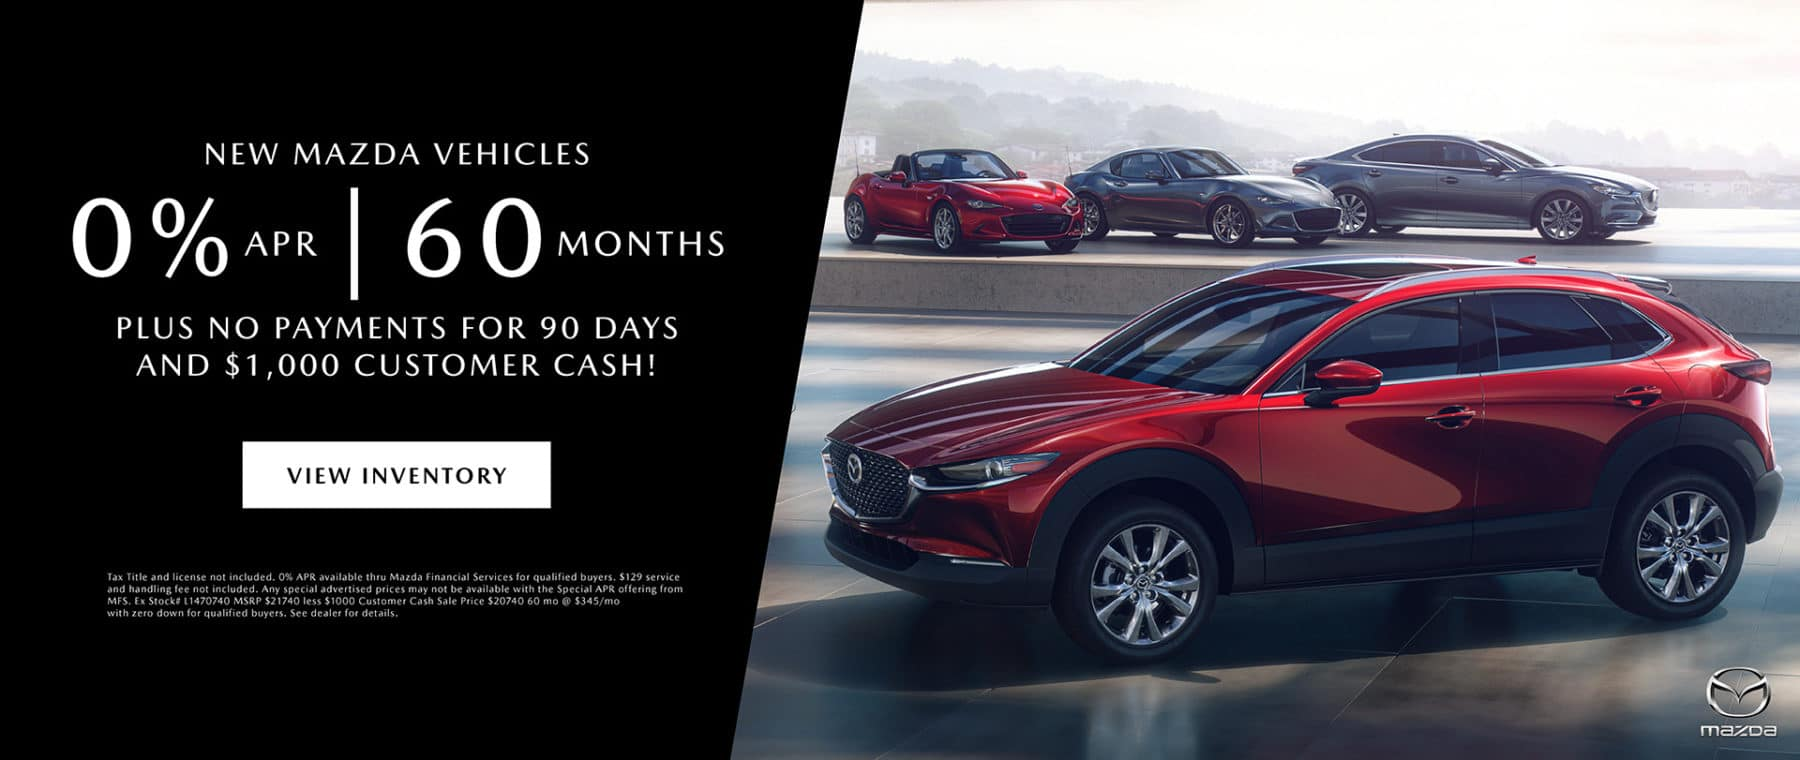 0% APR for 60 Months on New Mazda Vehicles!